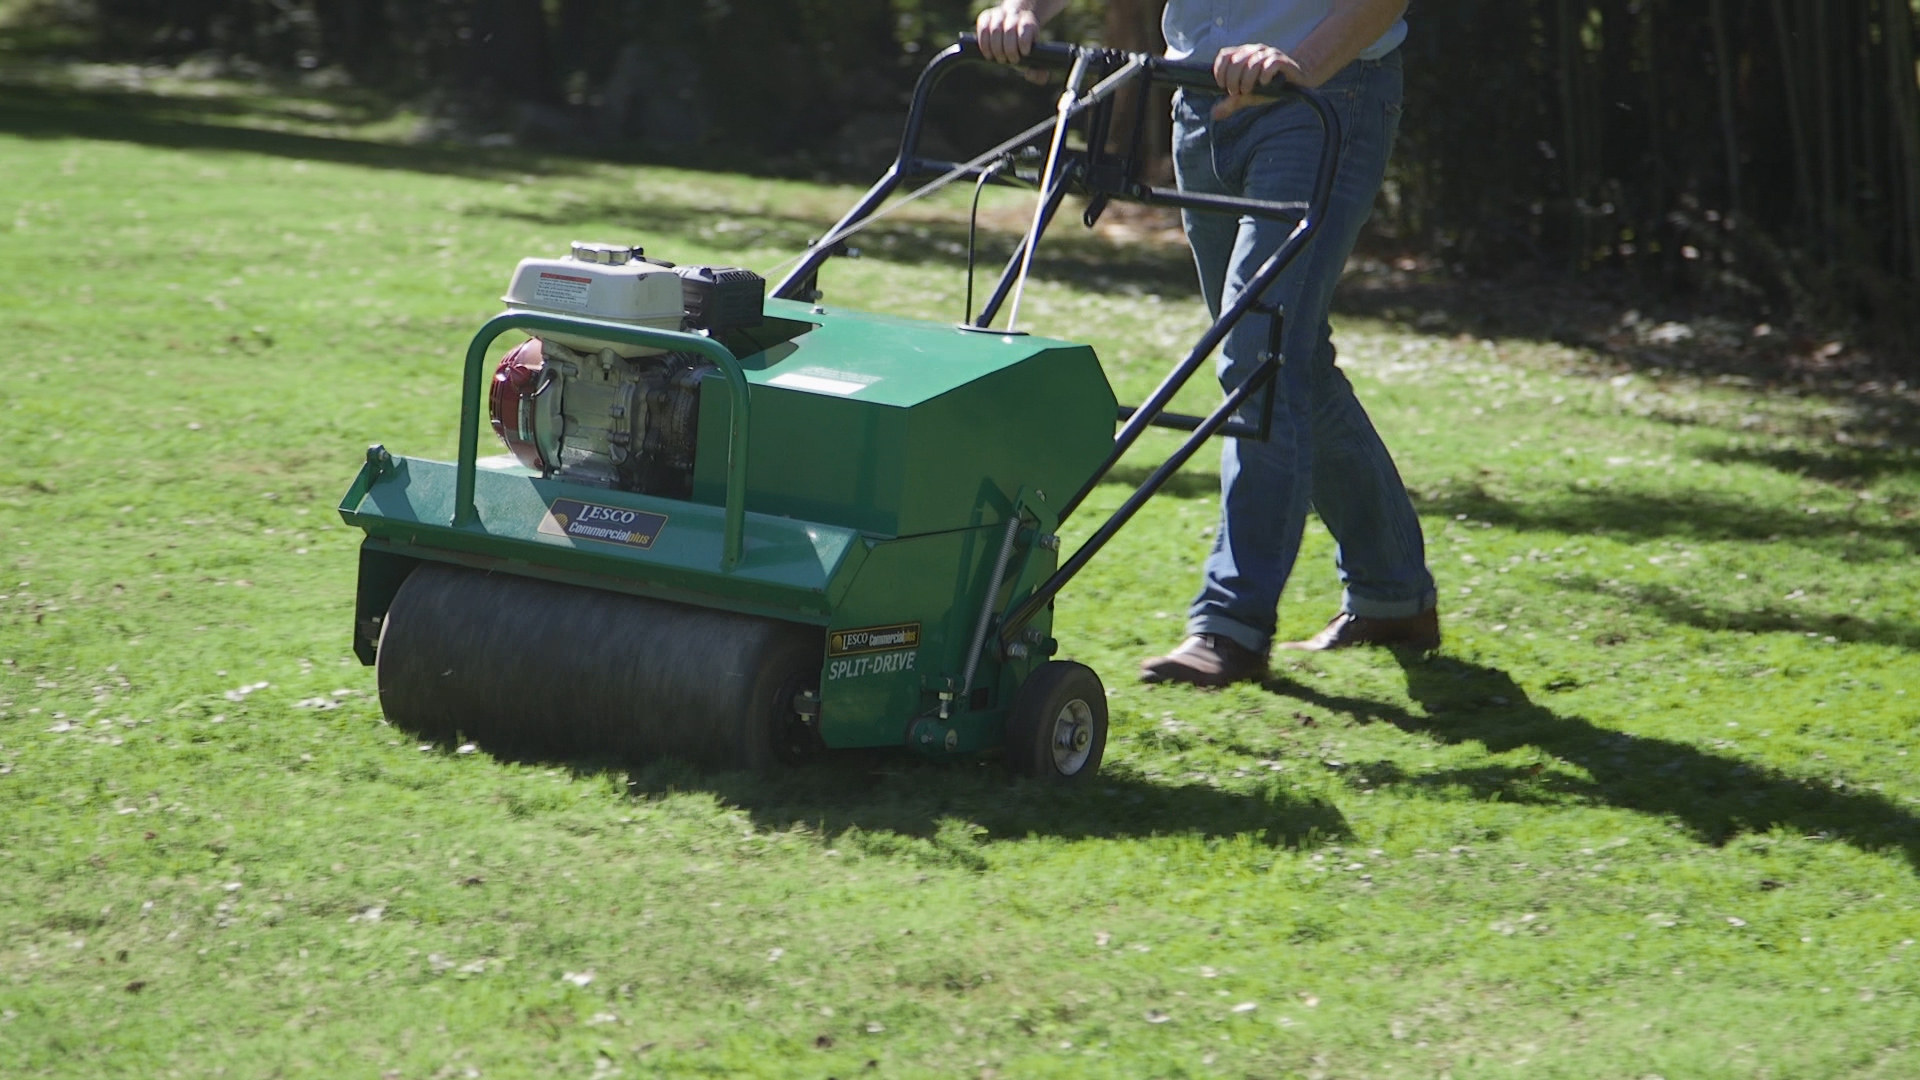 Fall lawn care tips aerate soil consumer reports for Lawn garden maintenance